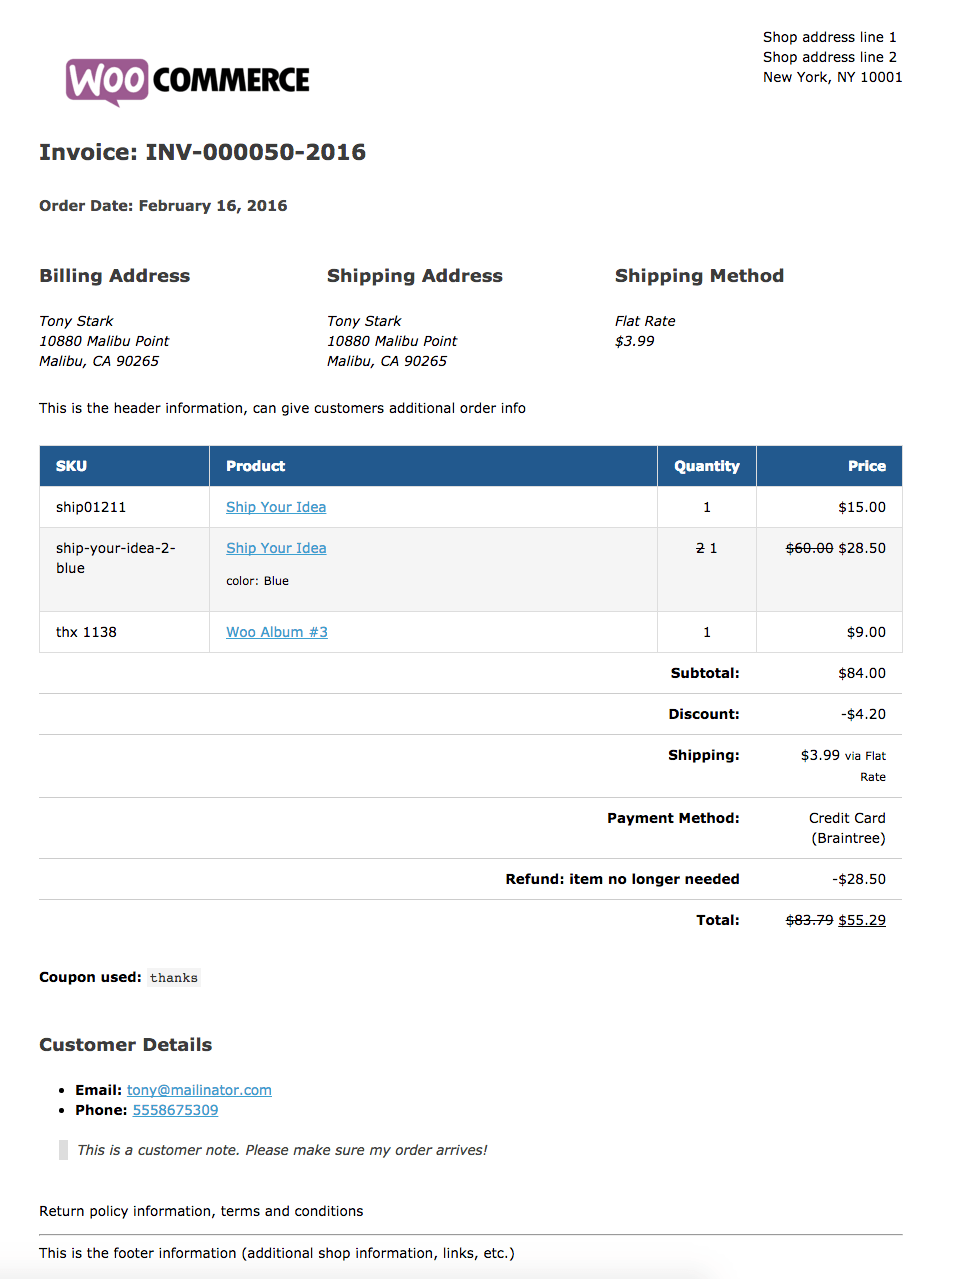 Aldiablosus  Pleasing Print Invoices Amp Packing Lists  Woocommerce With Fair View A Sample Invoice  With Amazing Missouri Vehicle Registration Receipt Also Create Receipt Online In Addition Writing A Receipt And Doctrine Of Constructive Receipt As Well As Upon Receipt Meaning Additionally Receipt Tracker Template From Woocommercecom With Aldiablosus  Fair Print Invoices Amp Packing Lists  Woocommerce With Amazing View A Sample Invoice  And Pleasing Missouri Vehicle Registration Receipt Also Create Receipt Online In Addition Writing A Receipt From Woocommercecom